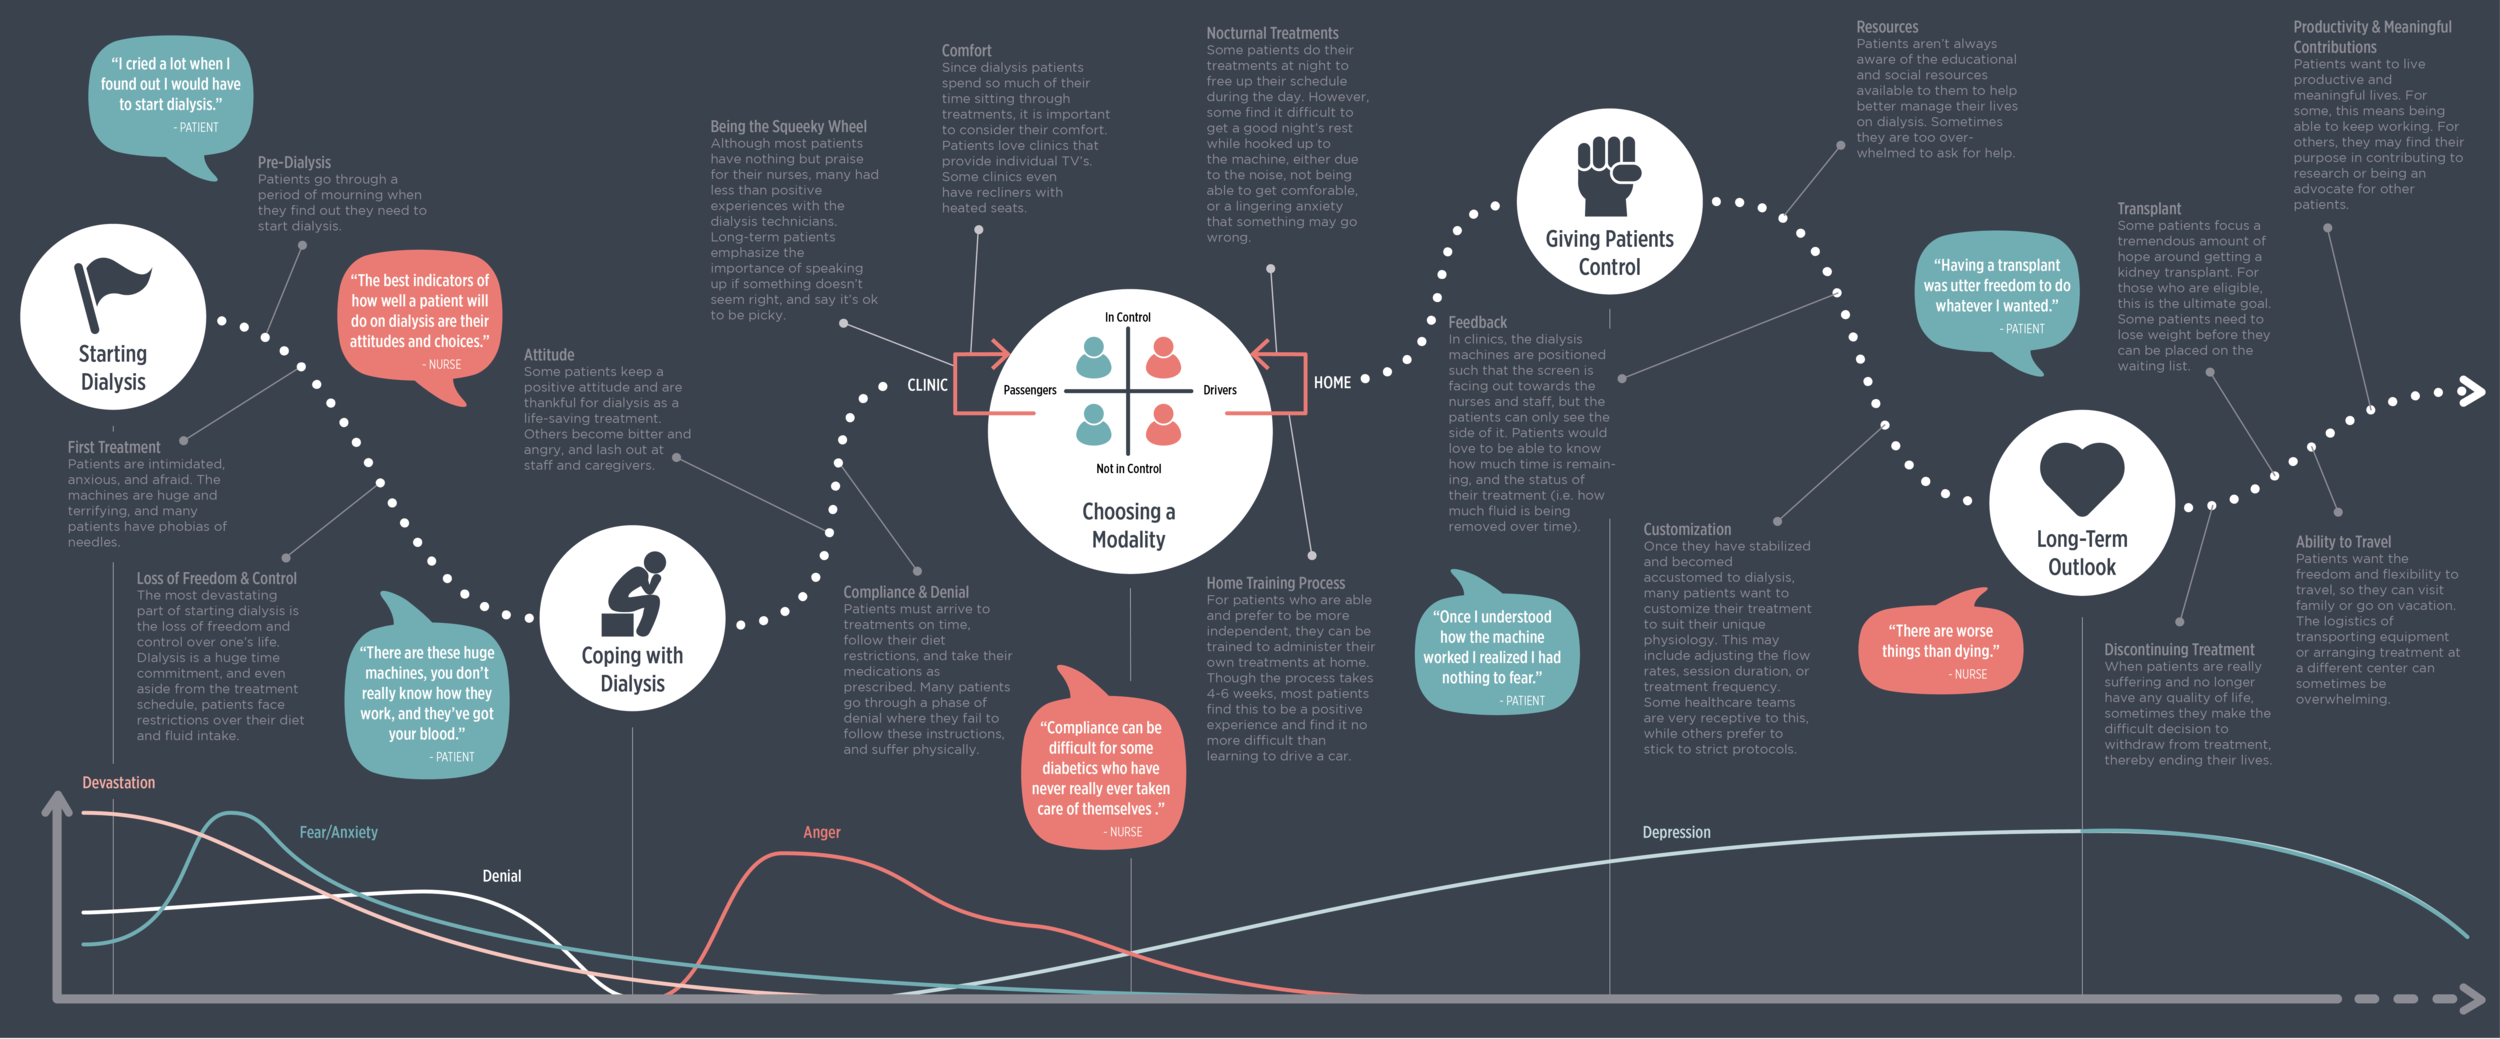 Dialysis Patient Experience Journey Map